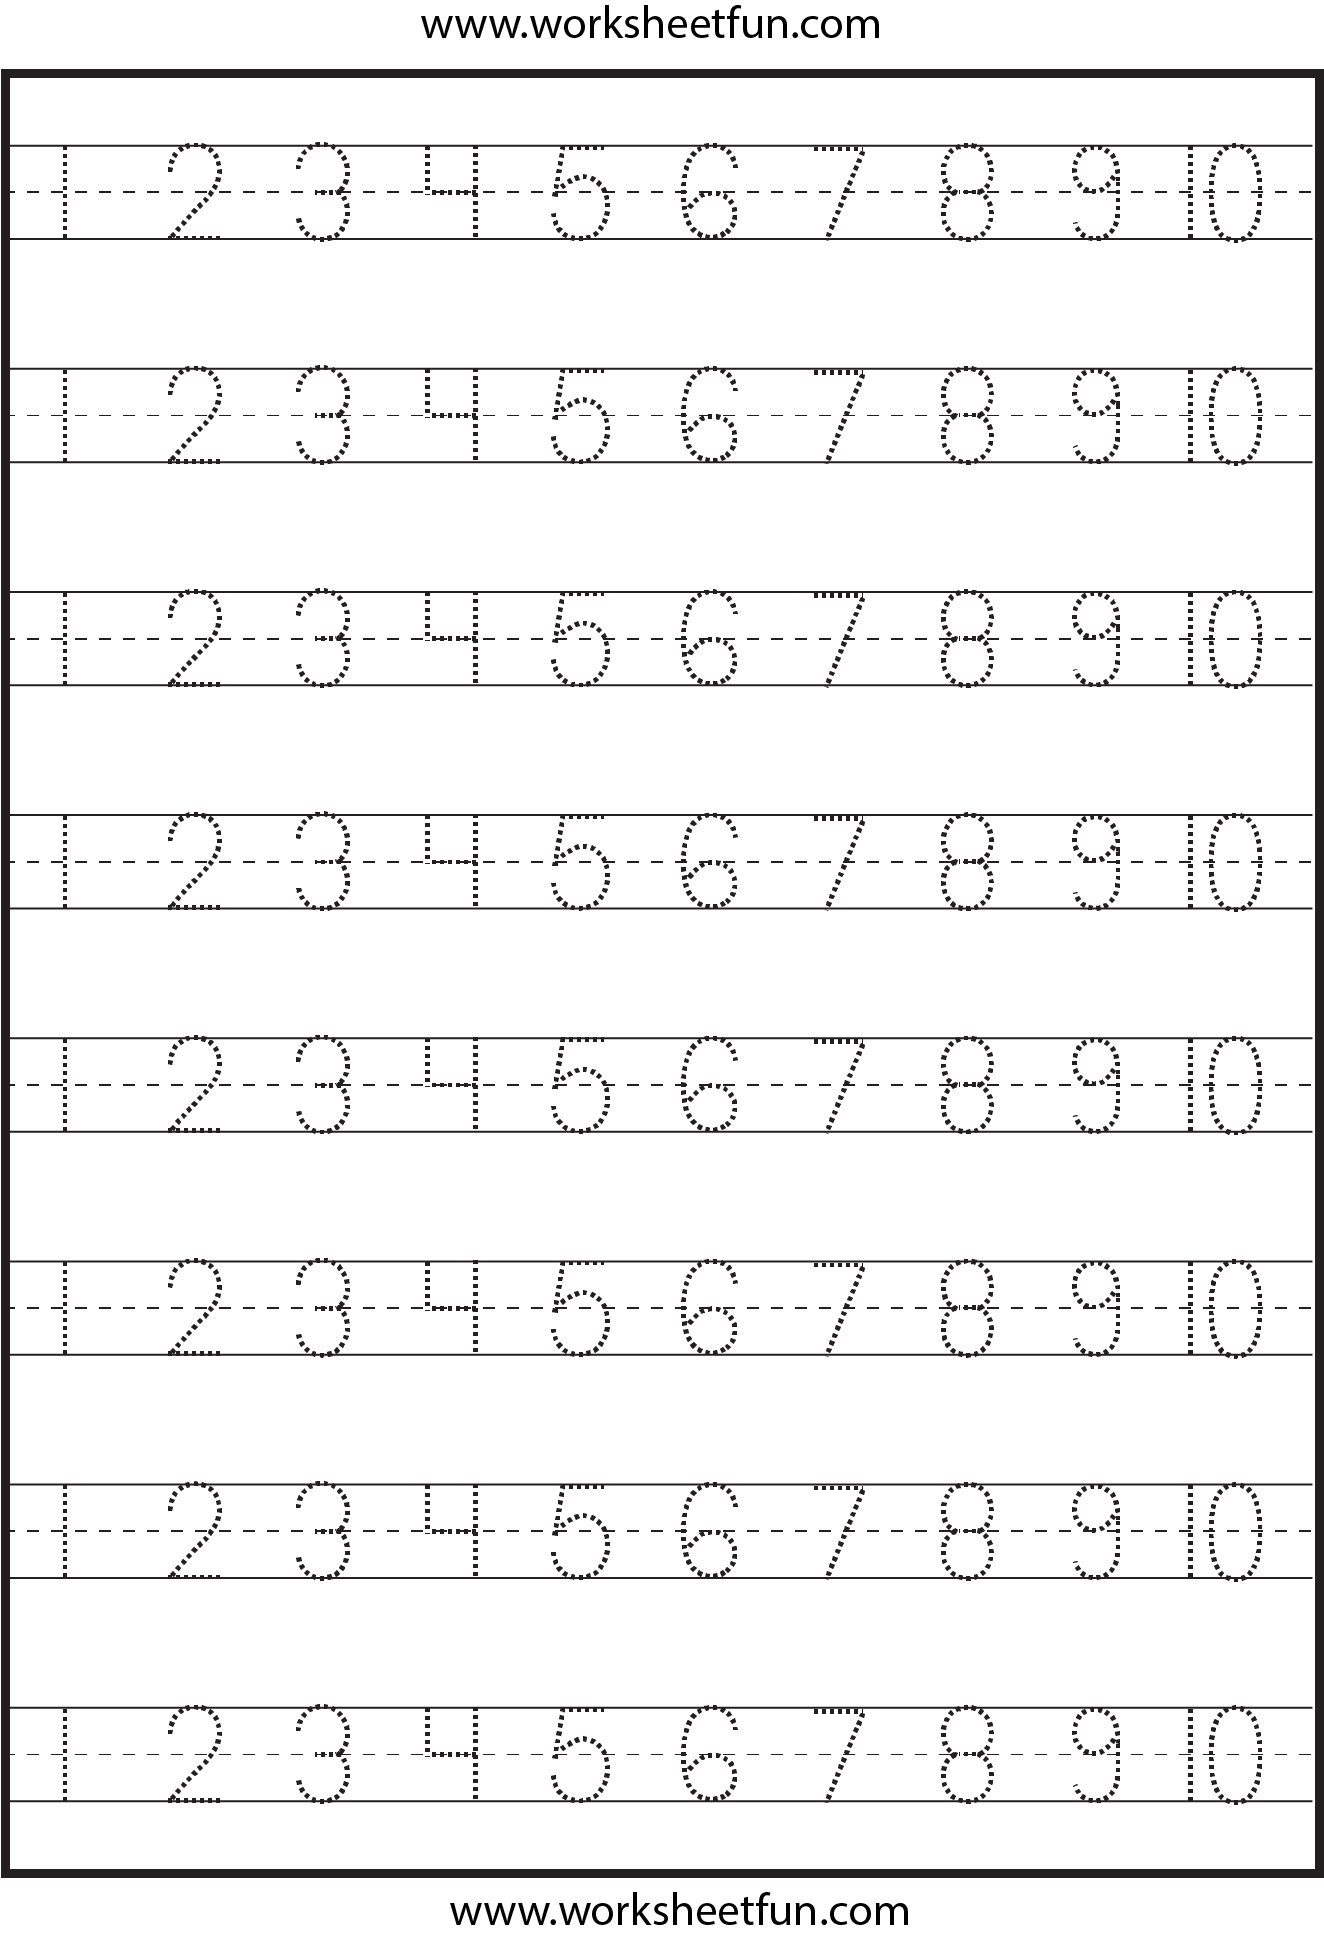 math worksheet : number tracing  1 10  worksheet  free printable worksheets  : Free Printable Tracing Worksheets For Kindergarten